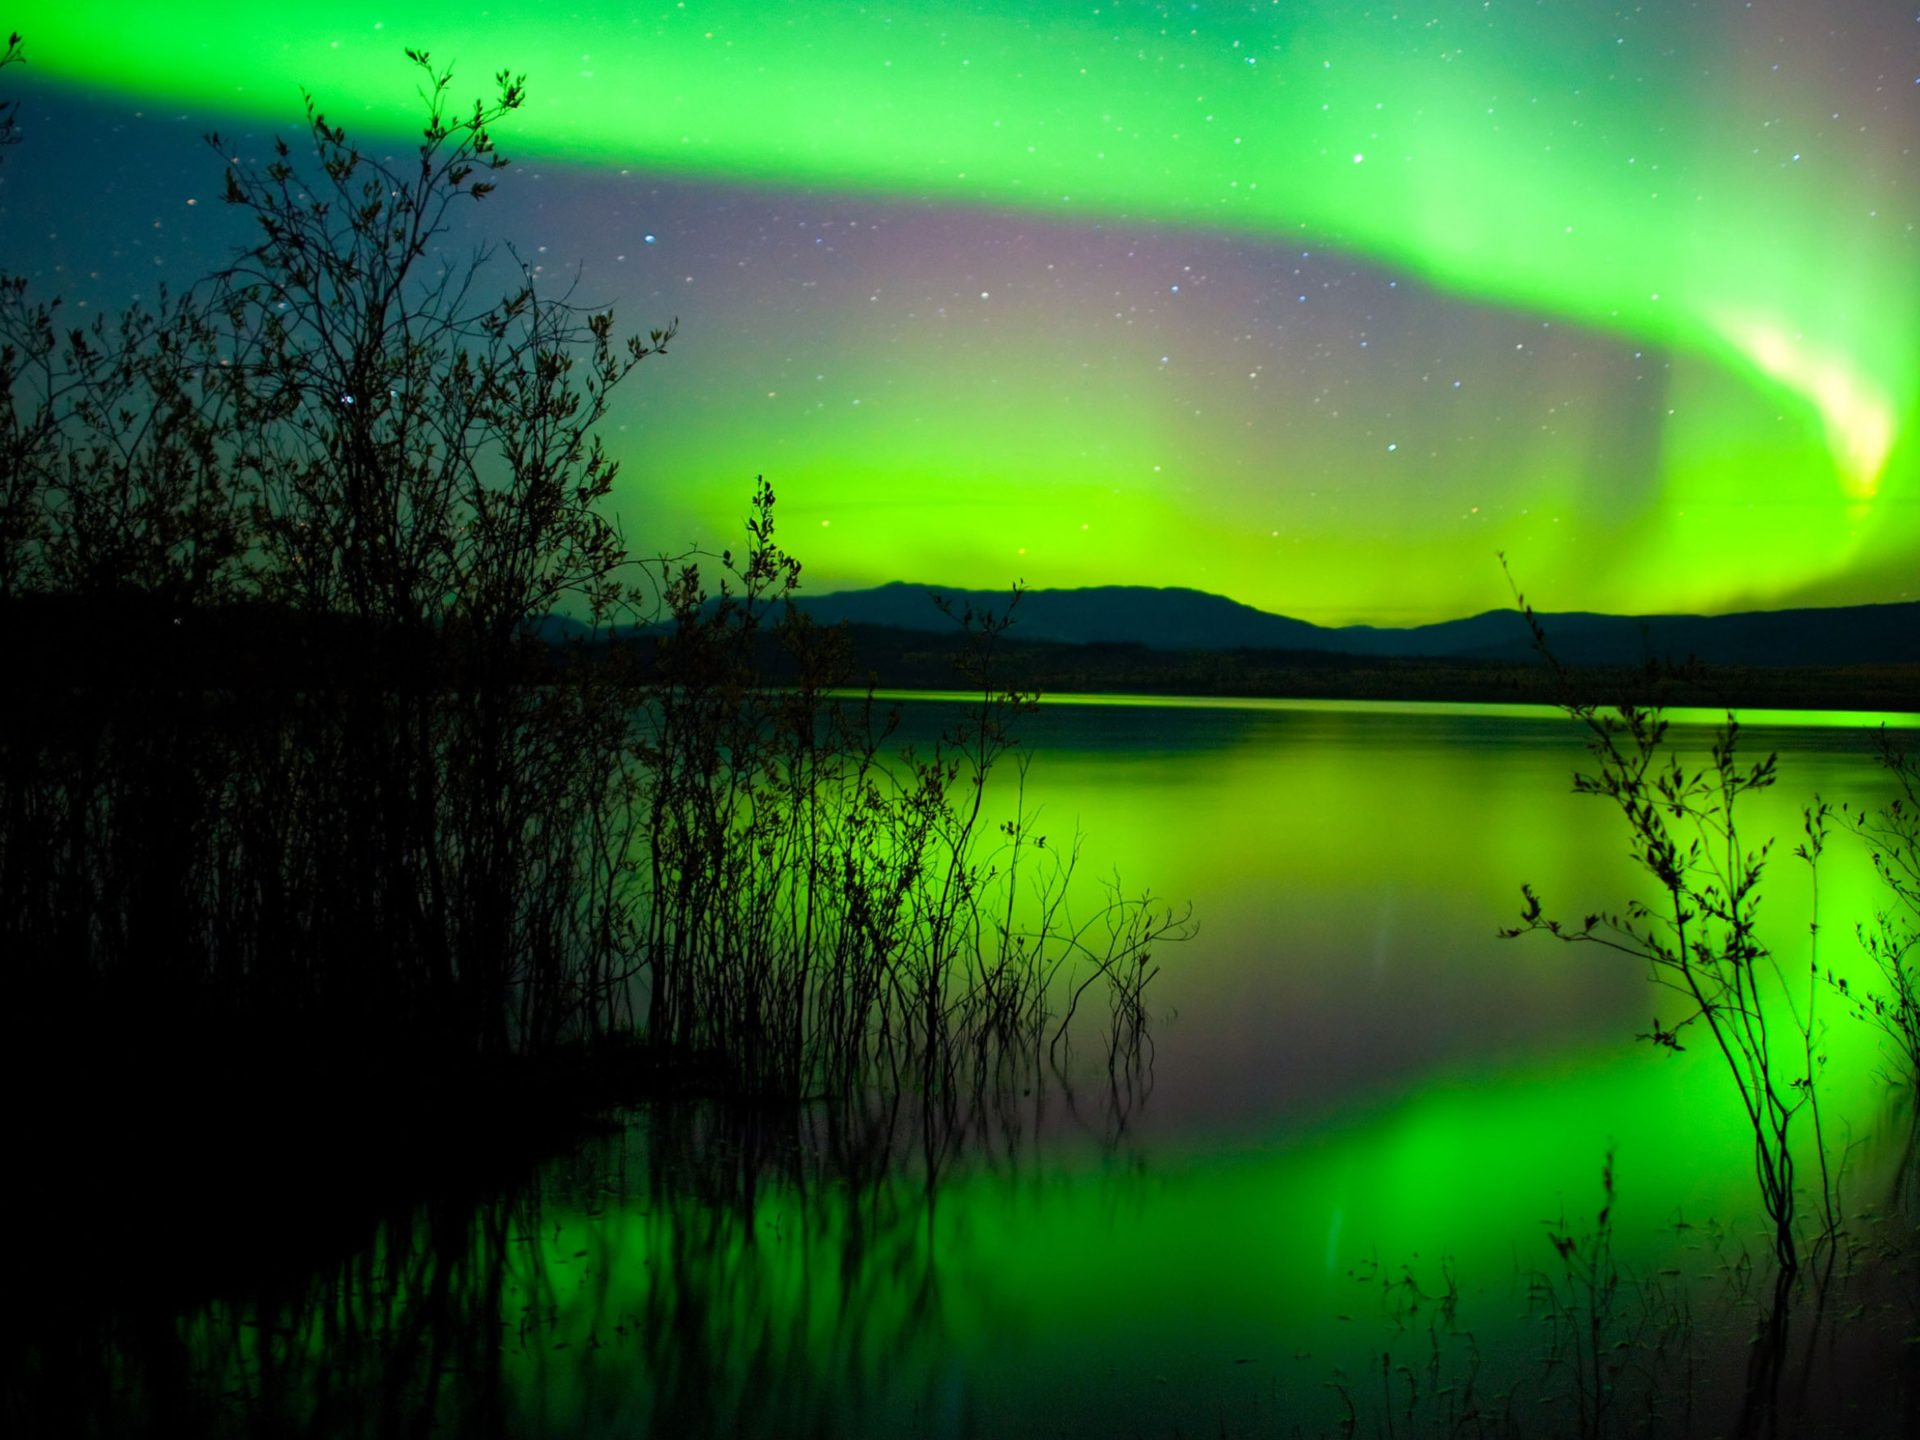 Free Wallpaper 3d Hd Green Northern Lights Canada Hd Wallpaper 1800x2880